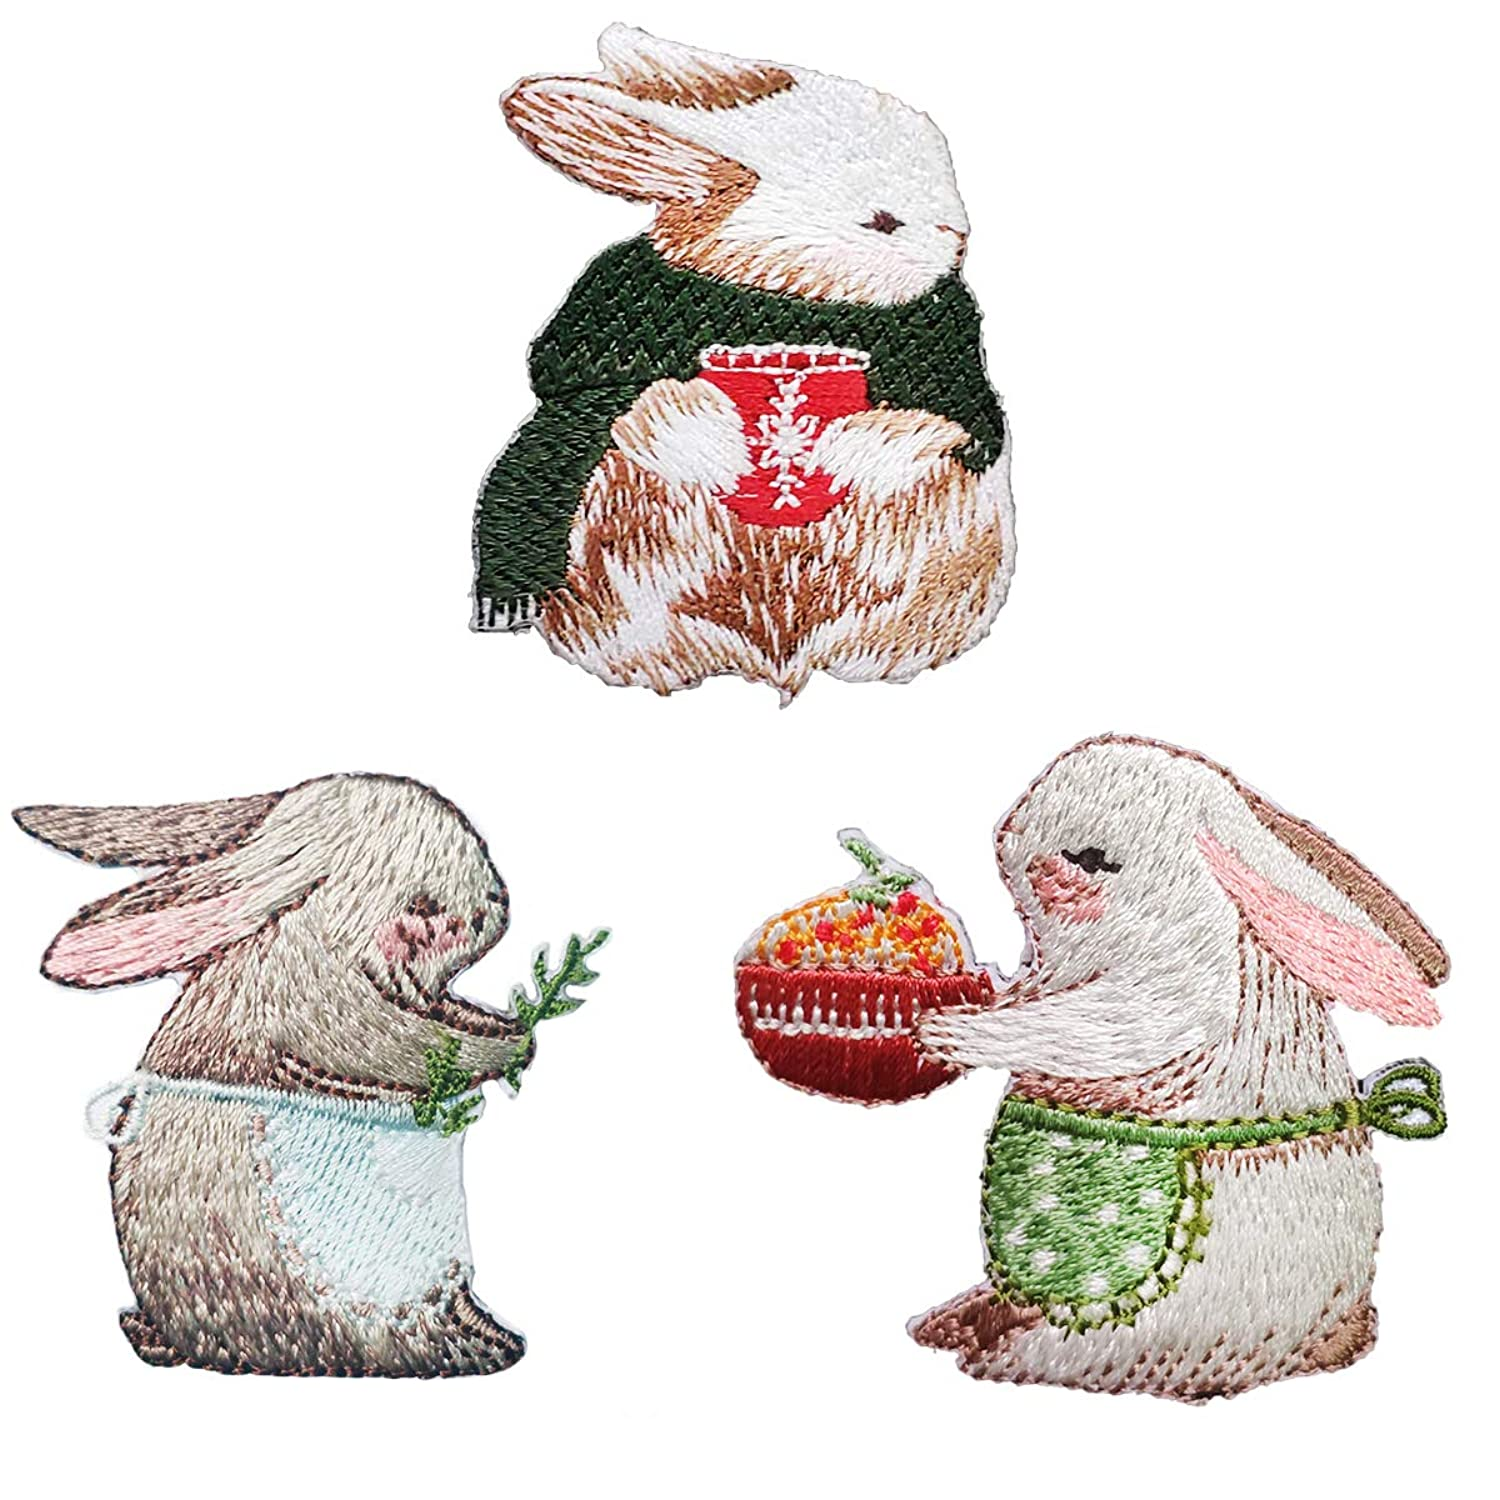 Misscrafts 3pcs Iron on Patches Cute Rabbit Iron Embroidery Applique Decoration DIY Patch for Backpack Clothing Men Women Kids